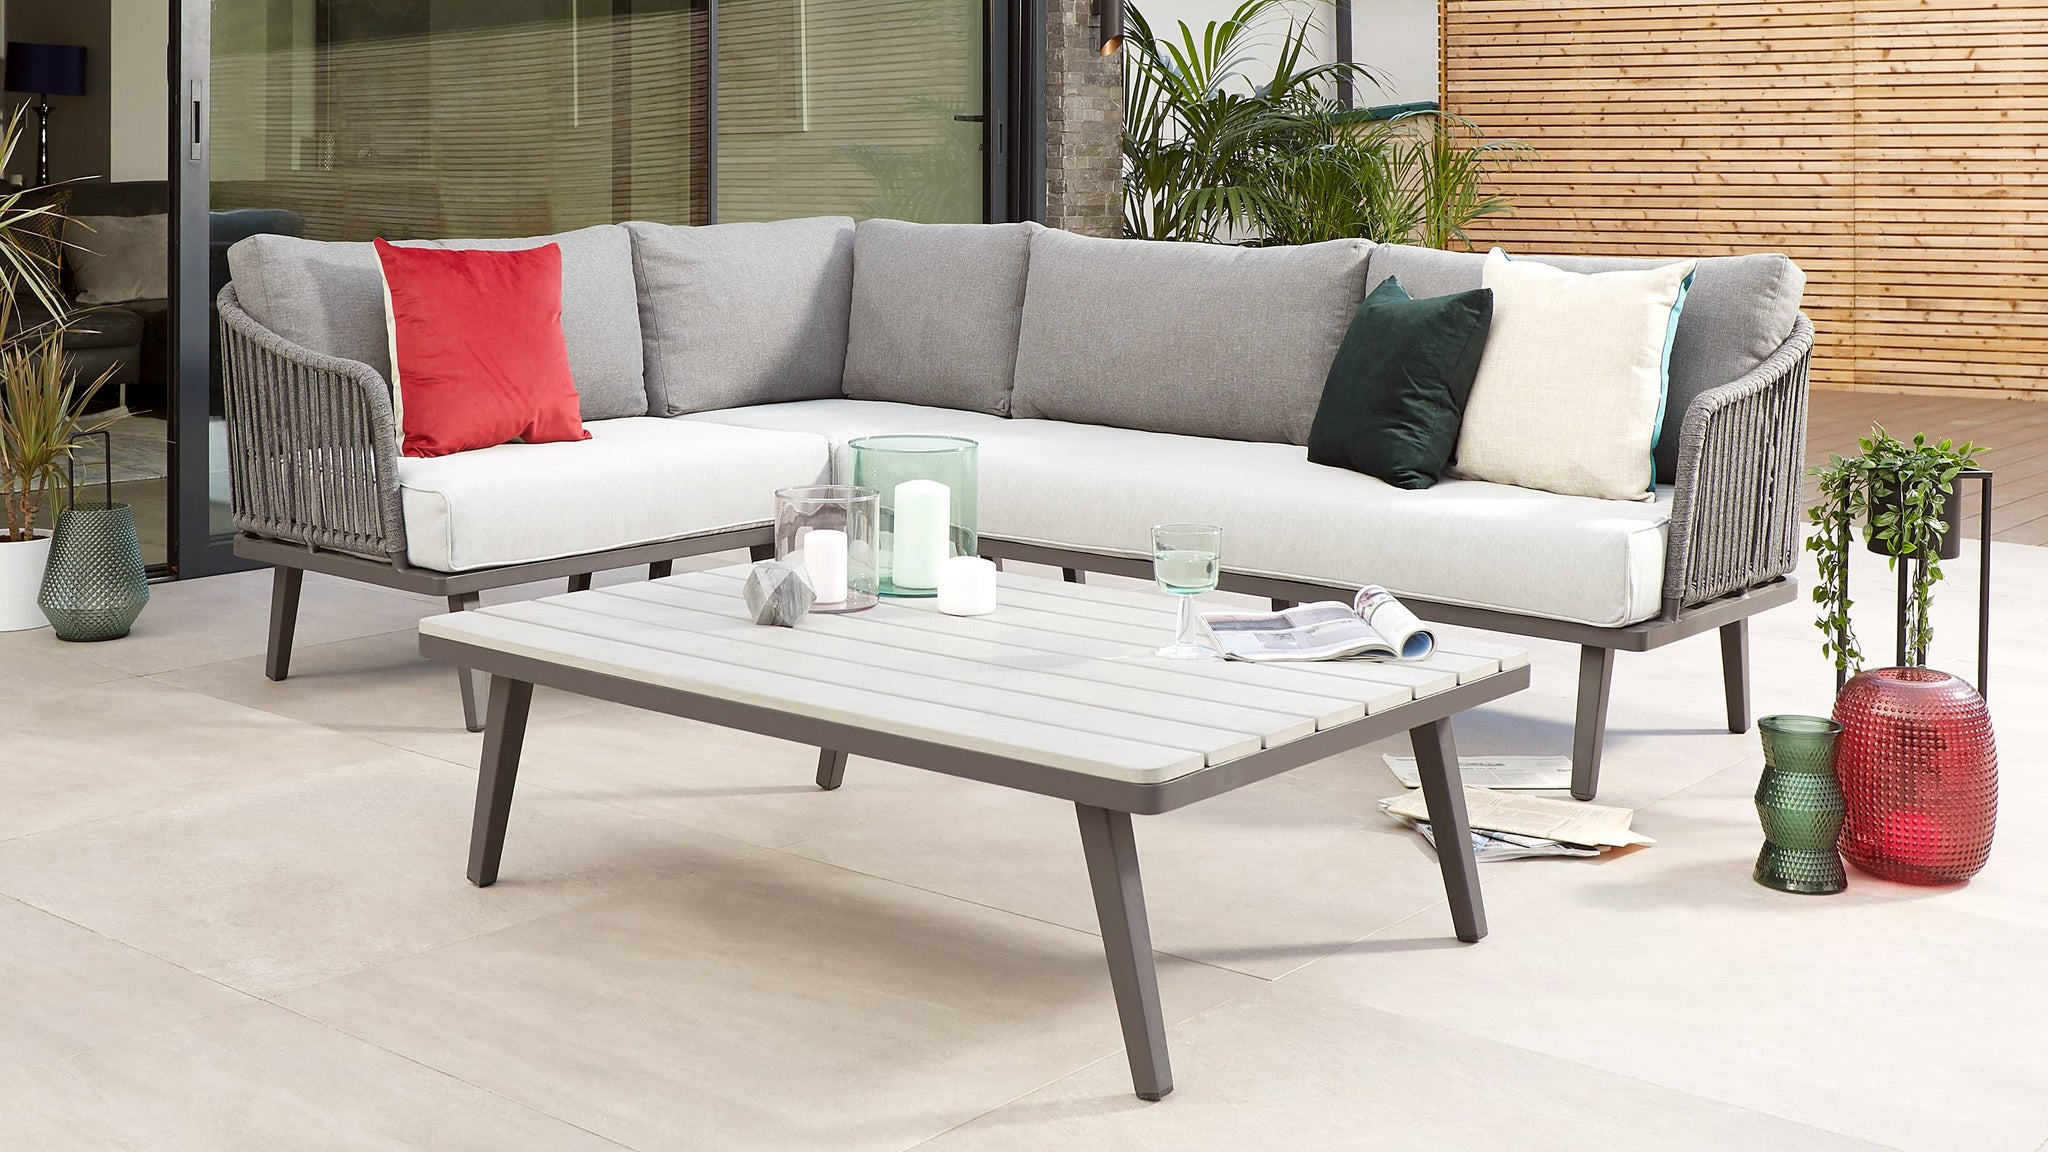 Modern rope back outdoor sofa